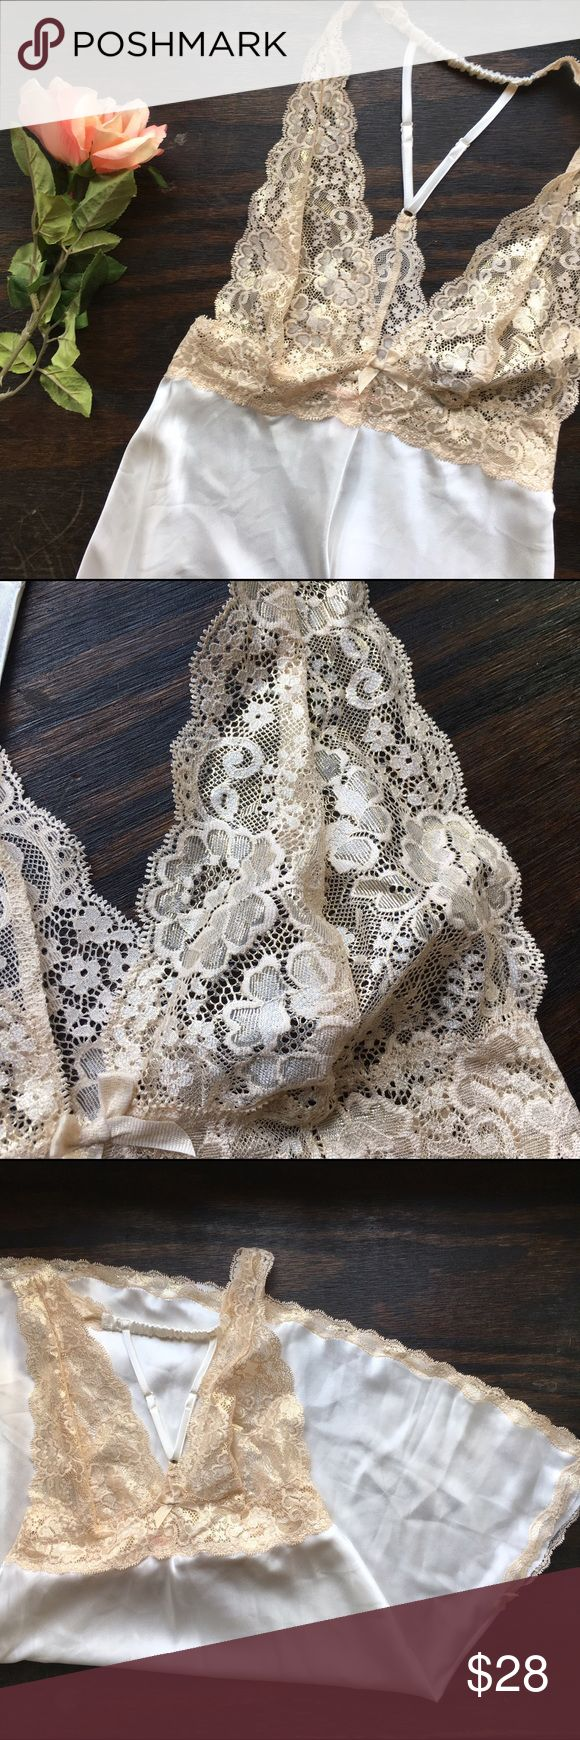 Victoria's Secret•Golden Lace Slip Sexy, slinky, & shimmery! Never been worn. A gorgeous nightie for your honeymoon! But, no special occasion necessary! 🌟😉 Victoria's Secret Intimates & Sleepwear Chemises & Slips